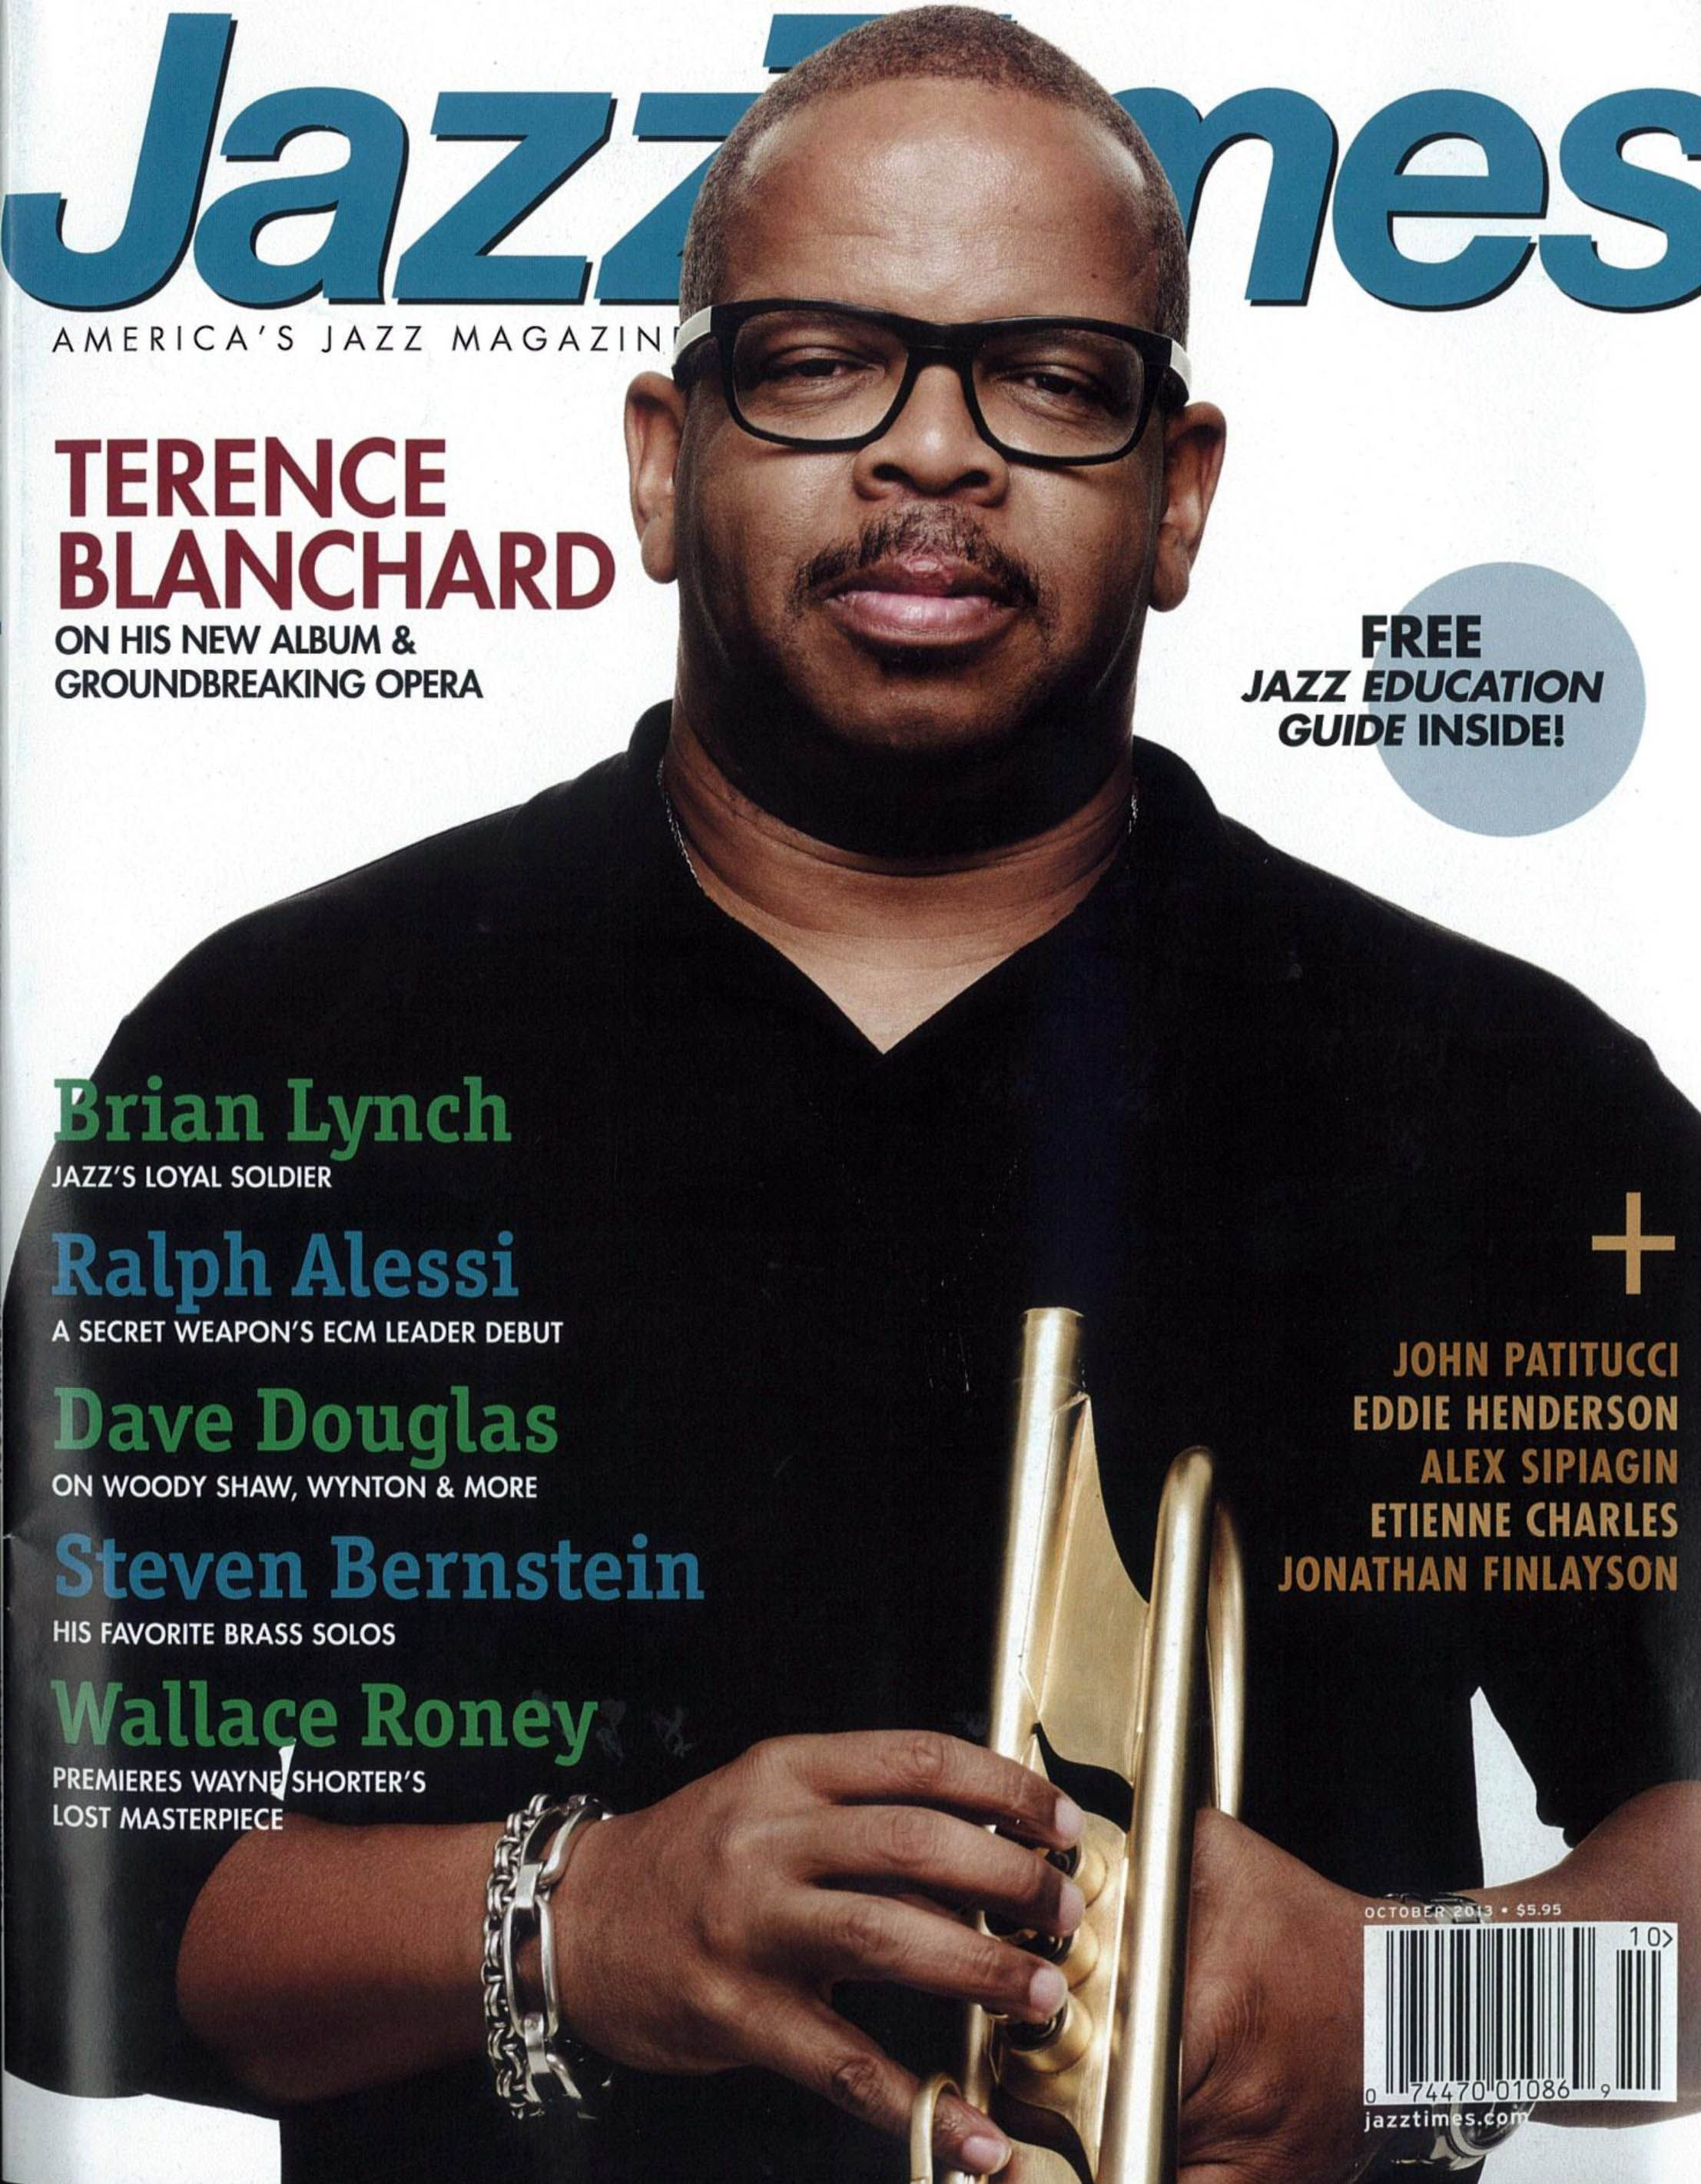 Terence Blanchard graces the October cover of JazzTimes!